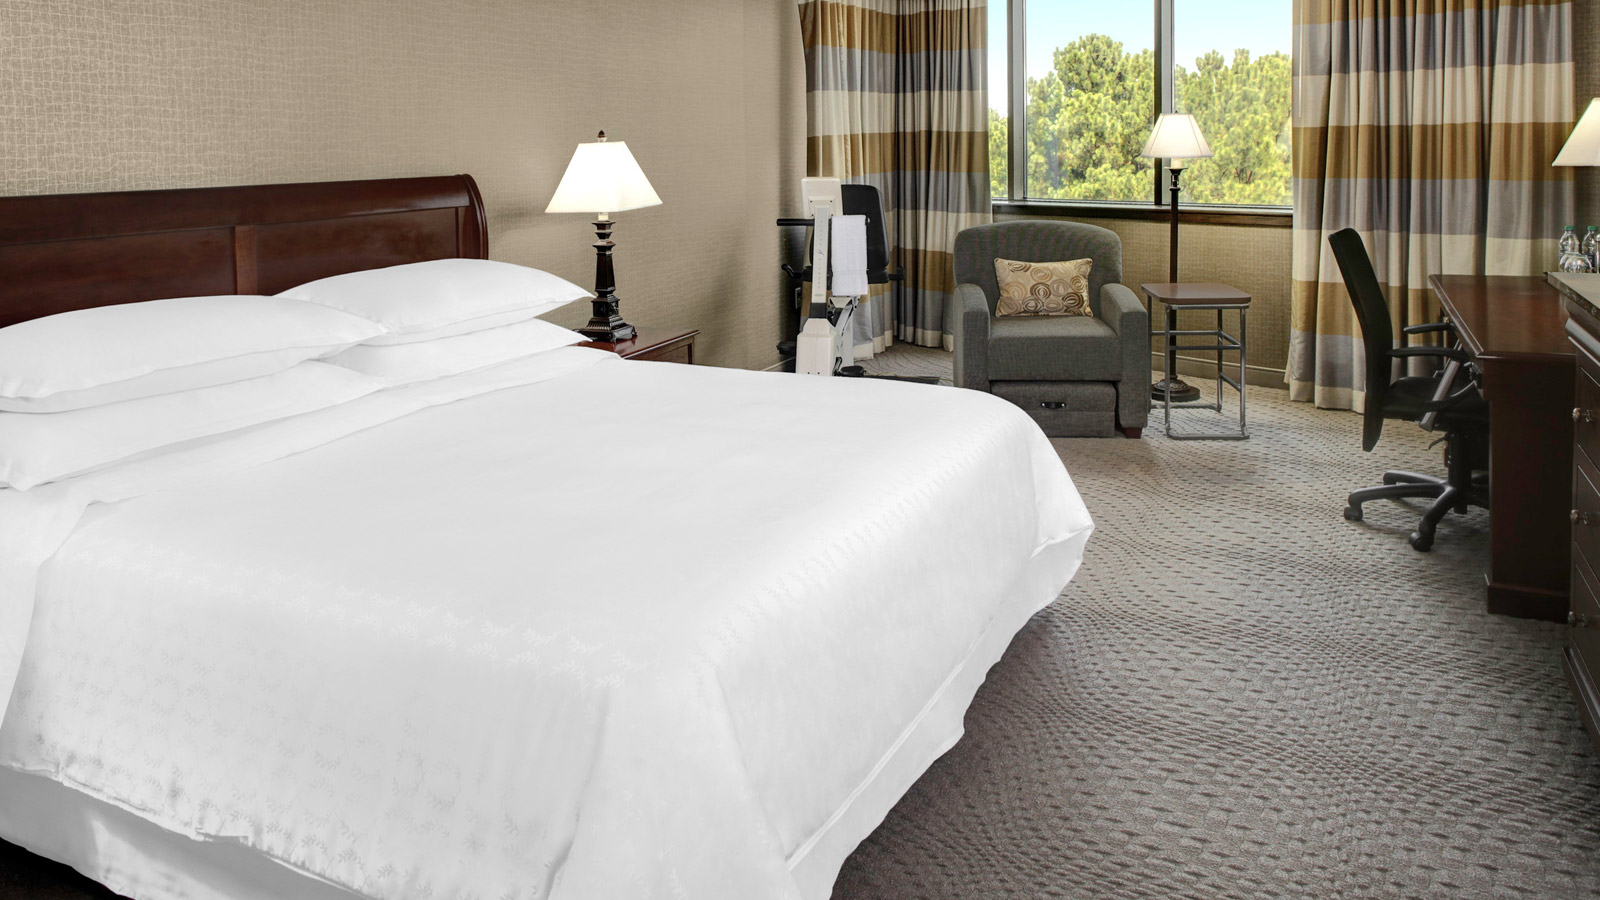 Sheraton Imperial Hotel Raleigh-Durham Airport at Research Triangle Park - UNC Chapel Hill